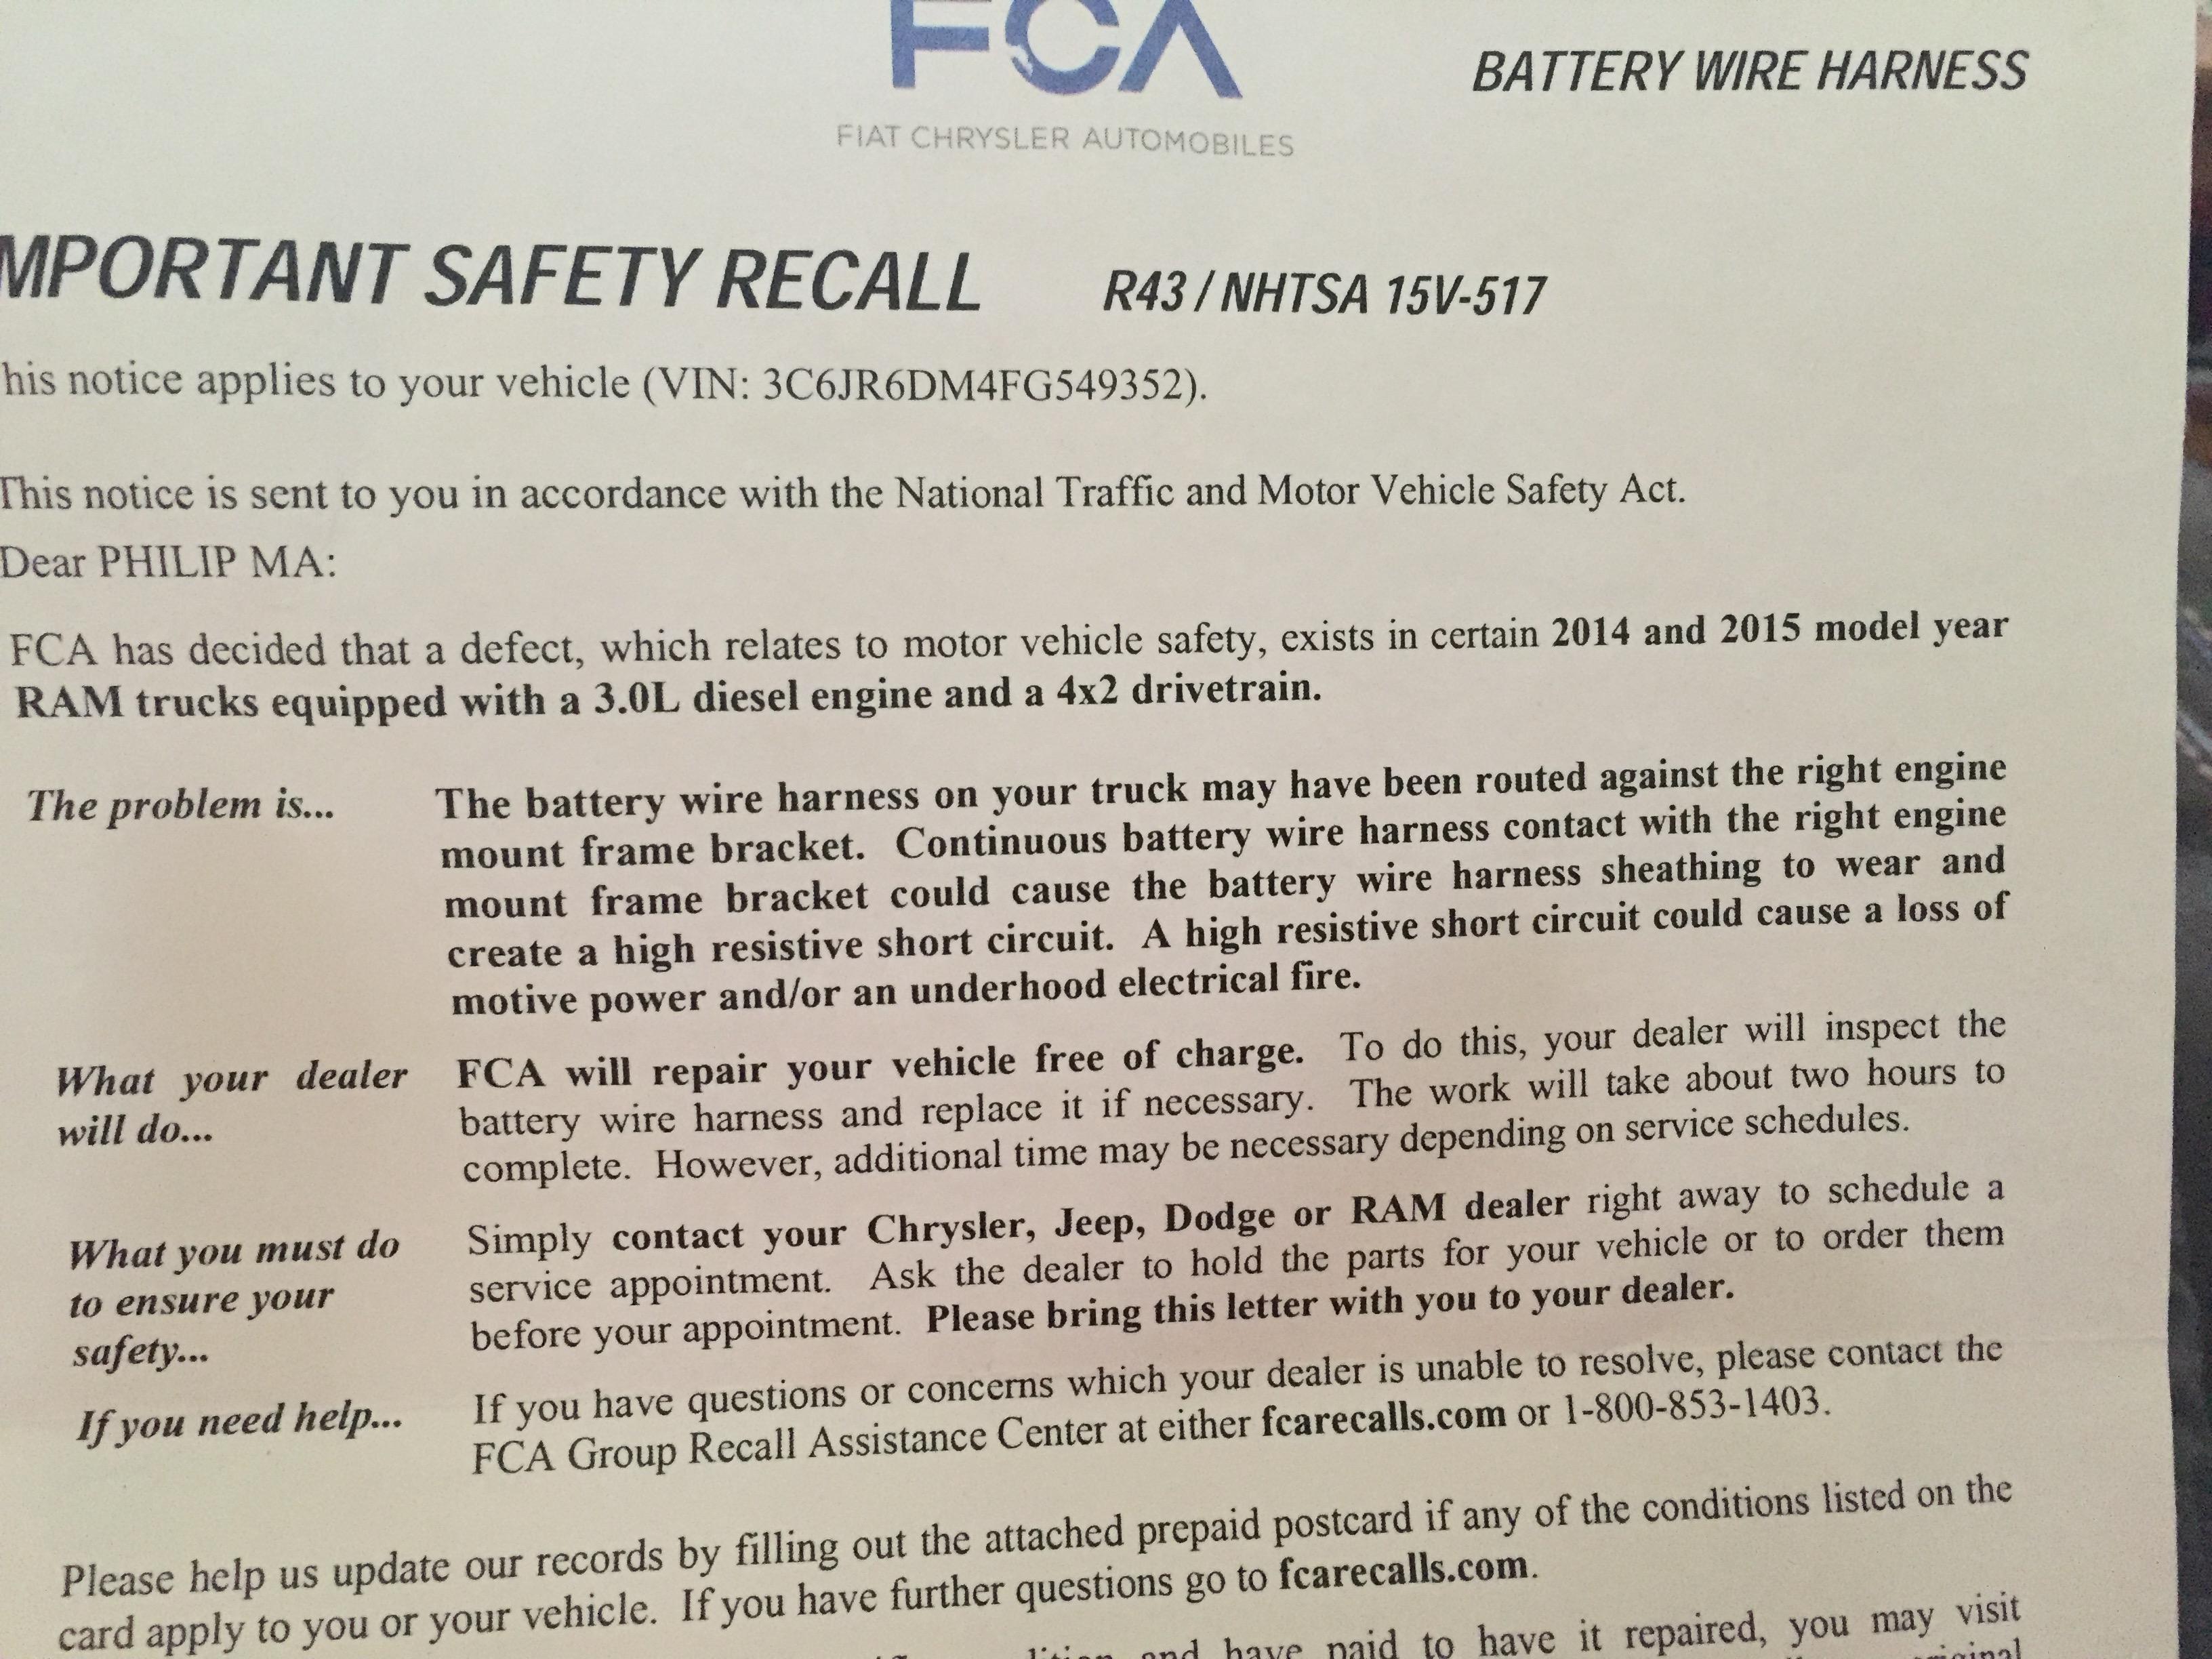 First Recall Letter But I Think Got This Repair Like 7 Months Ago Chrysler Wiring Harness